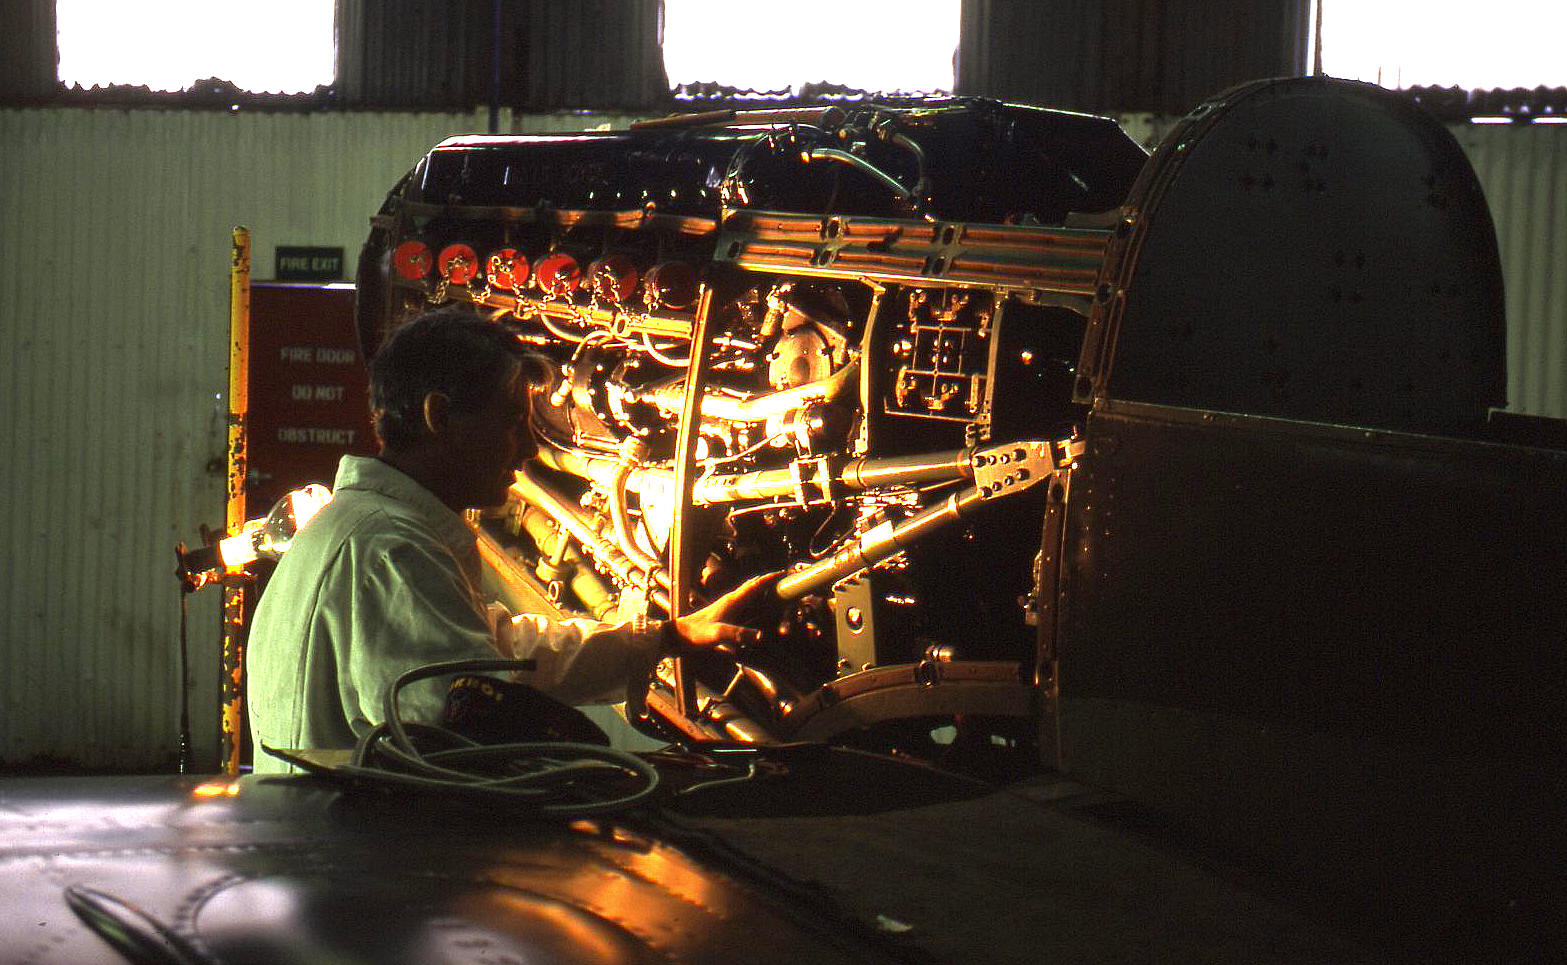 Working on a Merlin (Spitfire) in 1999